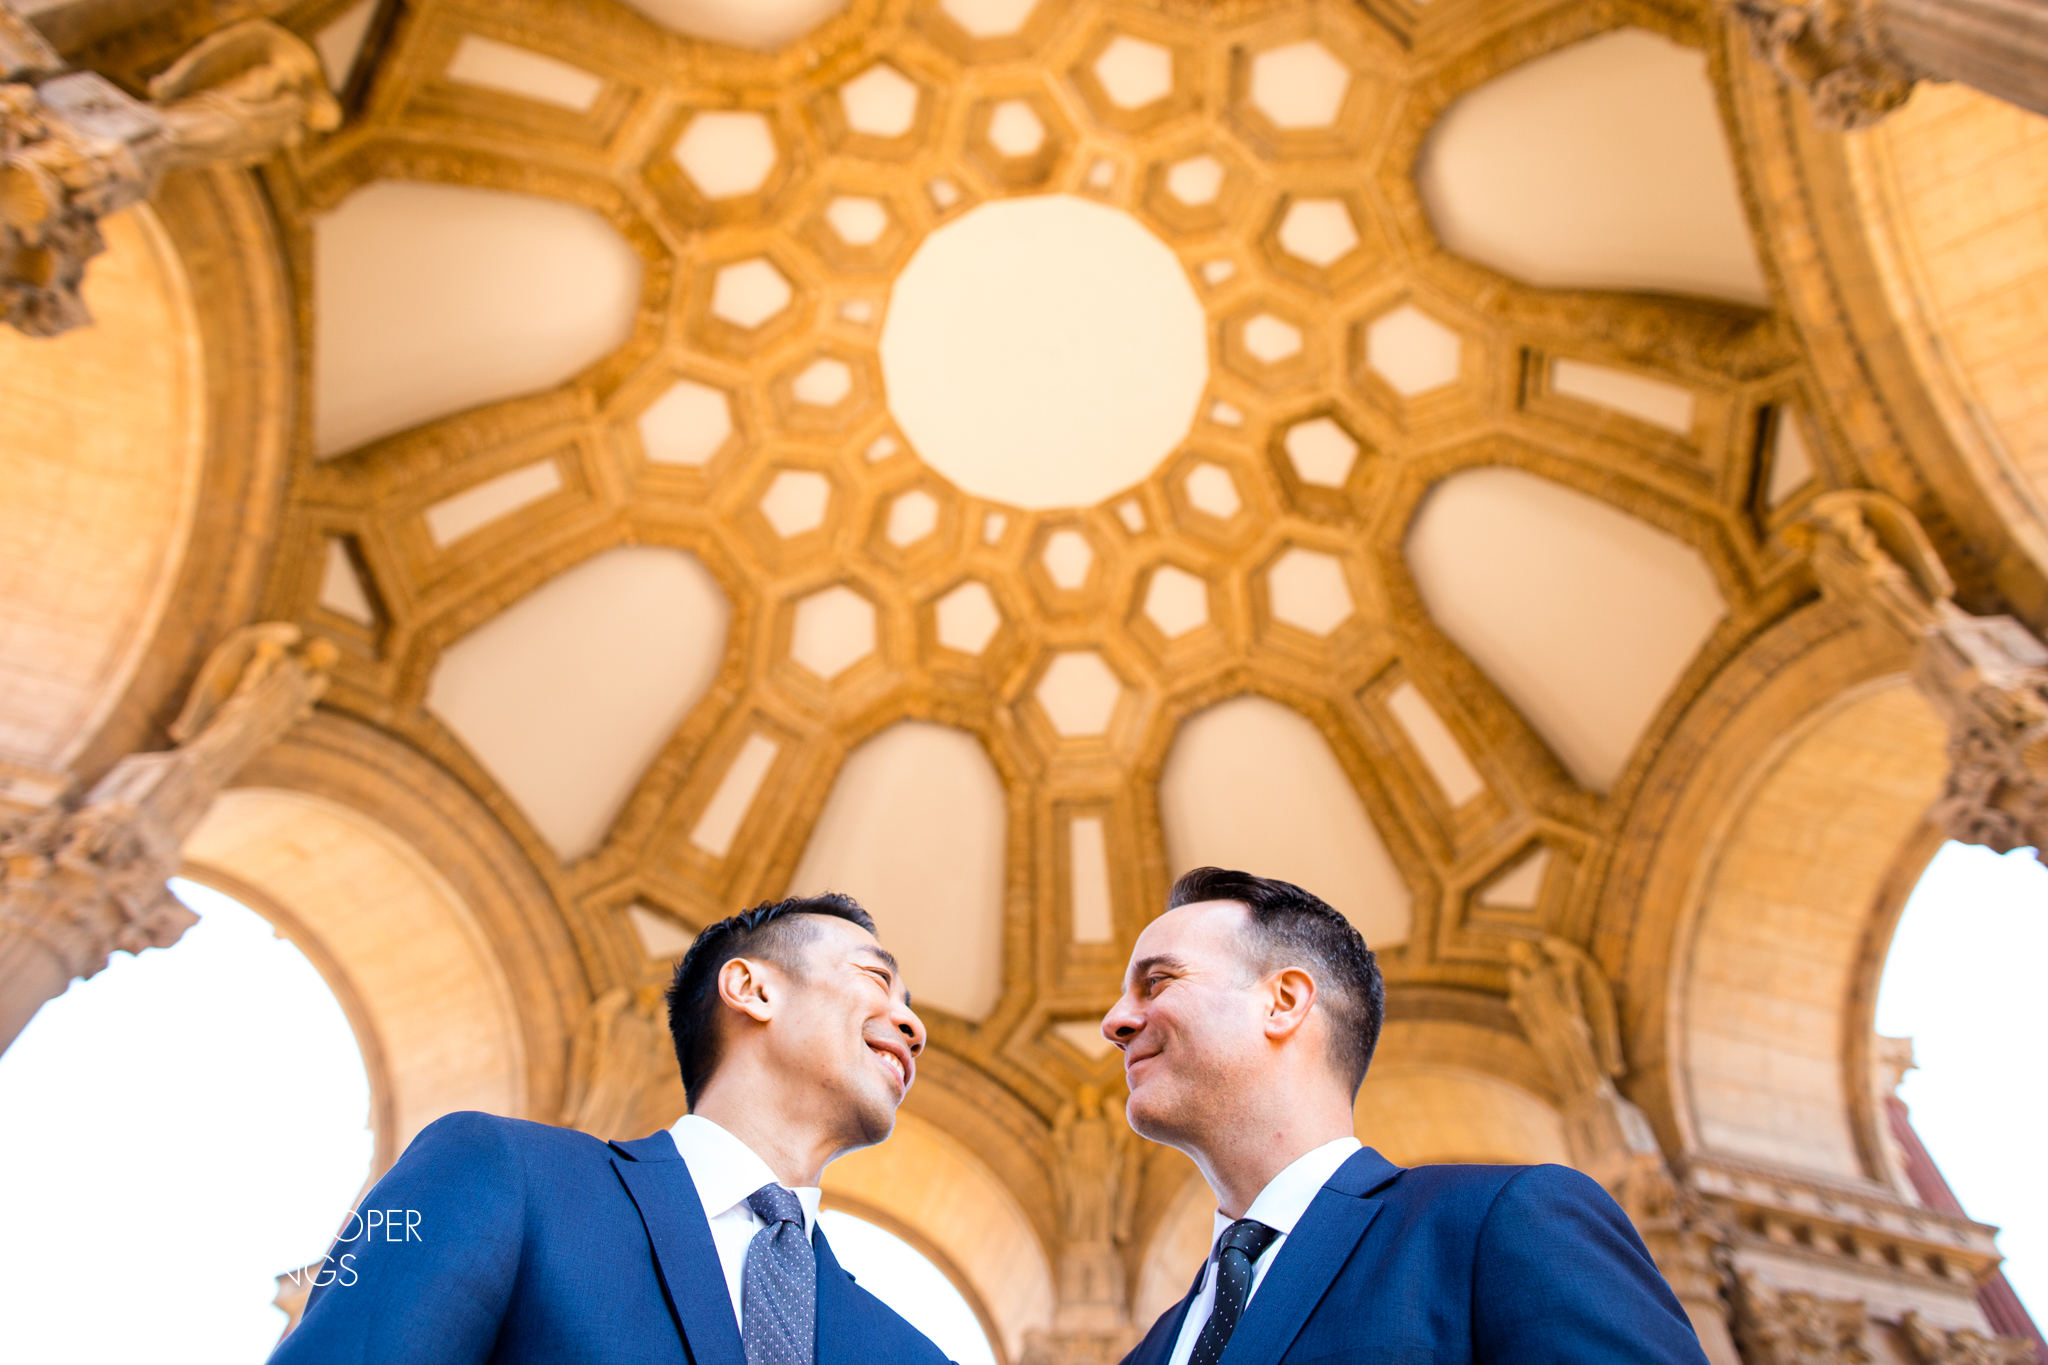 Palace of Fine Arts wedding photo of gay couple for San Francisco elopement